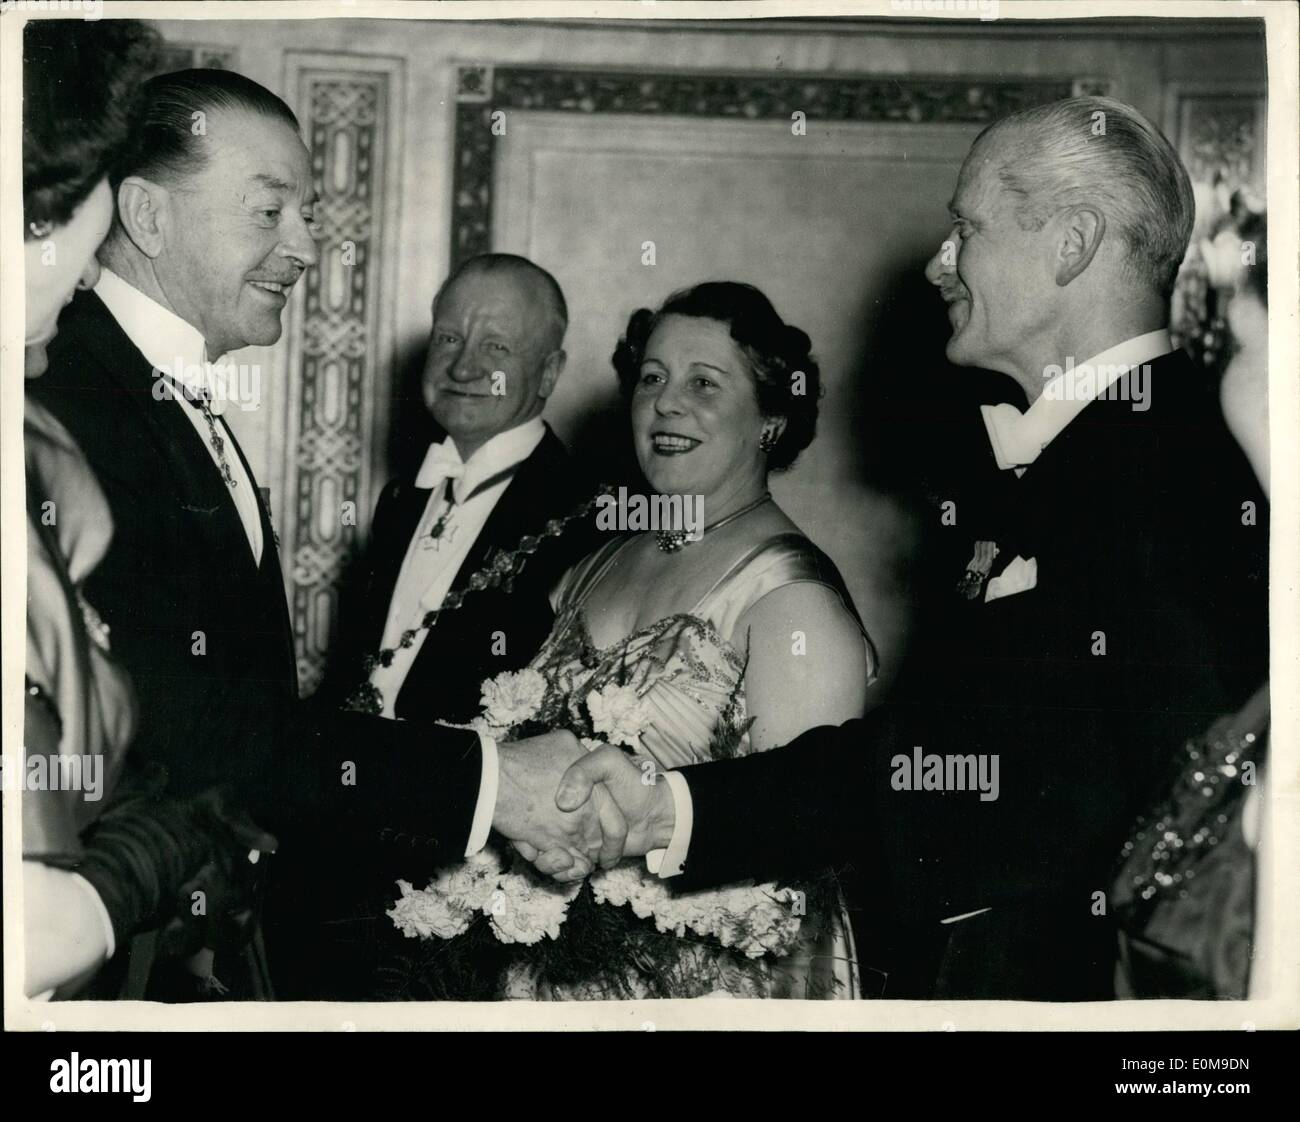 Mar. 03, 1954 - Colonel released on bail-attends Banquet. Colonel Norman Shakes hands with defence Minister.: Colonel Frank Norman, 56 year old Chairman of the Westminster Chamber of Commerce was arrested in his Regent Street Office yesterday and charged with being concerned in the attempted export of £214,000 worth of copper to being the Iron Curtain. He was released and bail - an then last evening he attended a banquet at the Dorchester Hotel and responded to a toast - to the Westminster Chamber of Commerce - after it had been proposed by Mr. Lloyd George the Food Minster - Stock Image